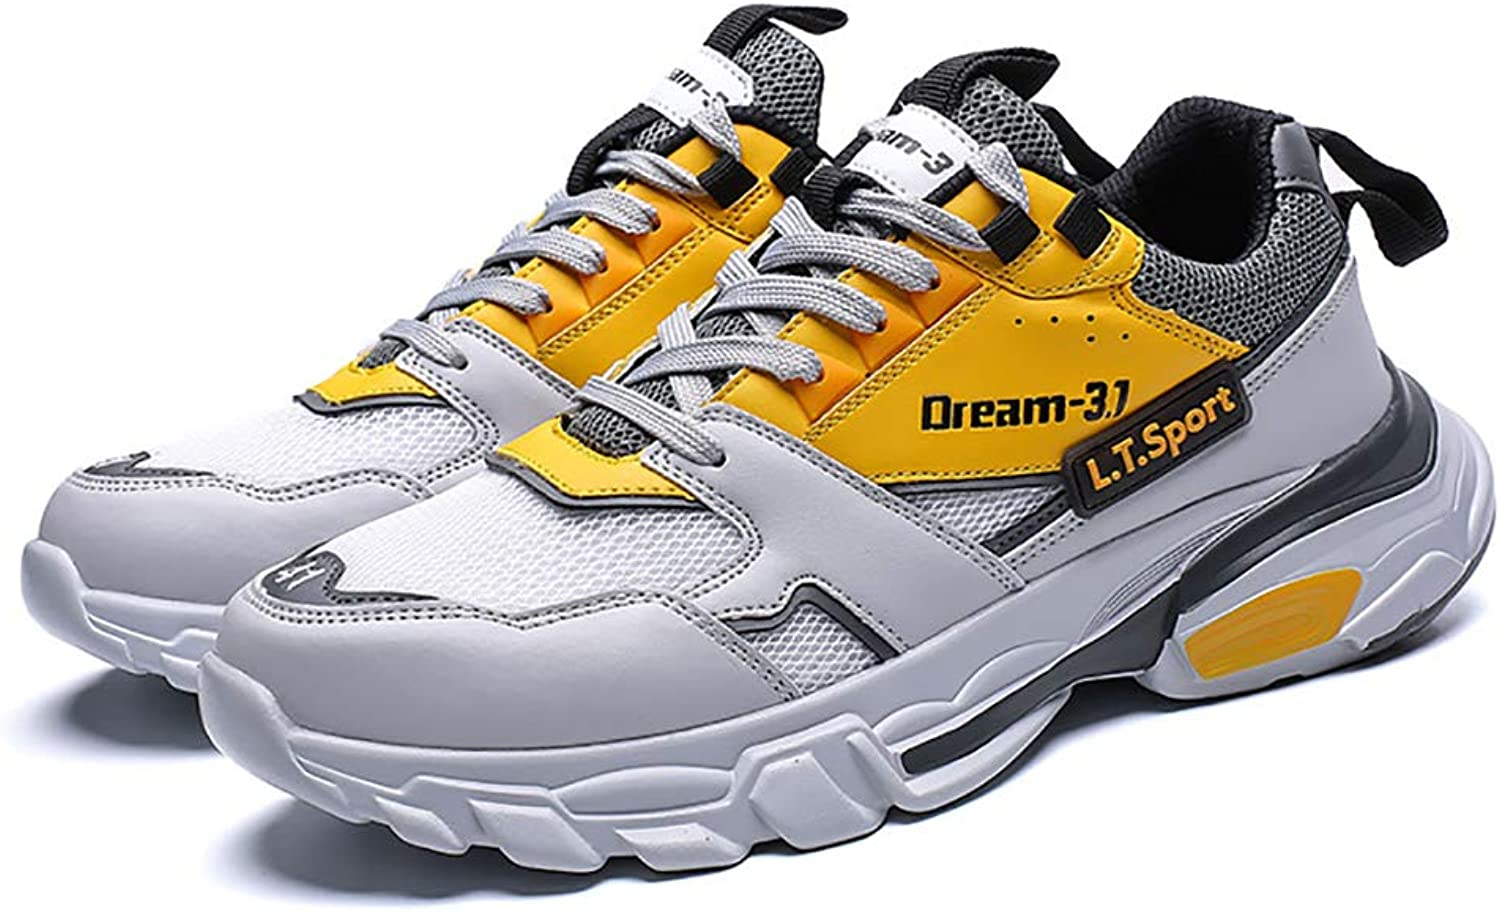 Men's shoes Casual shoes White shoes Sneakers shoes Running shoes Students Tide shoes Light Comfortable Spring Summer